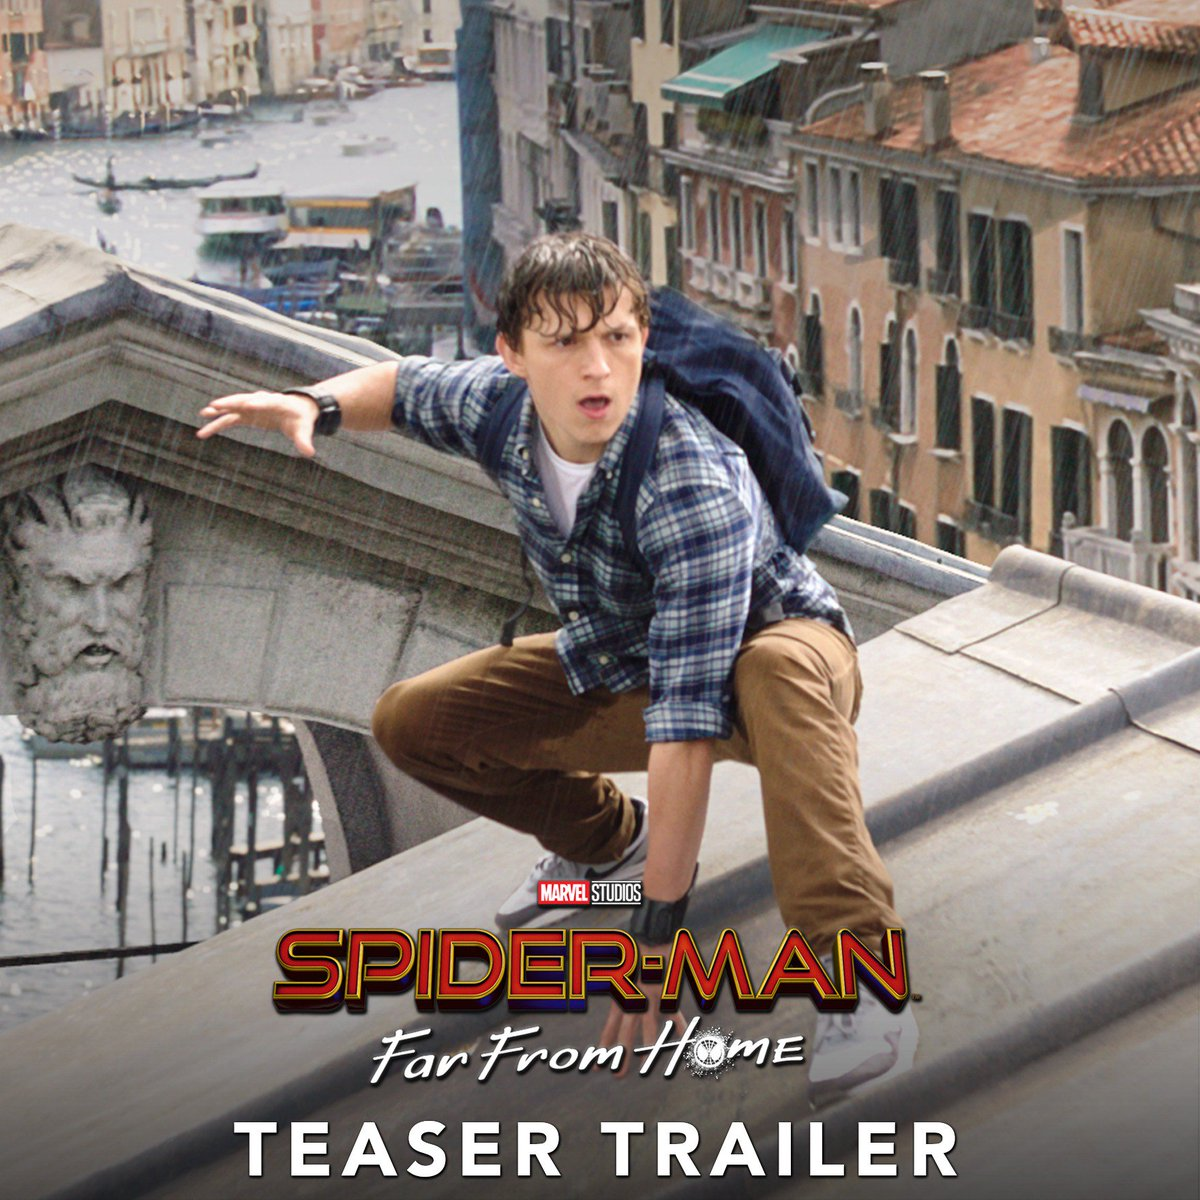 Mornin' everyone, start your day right with this trailer 😮 #SpiderManFarFromHome